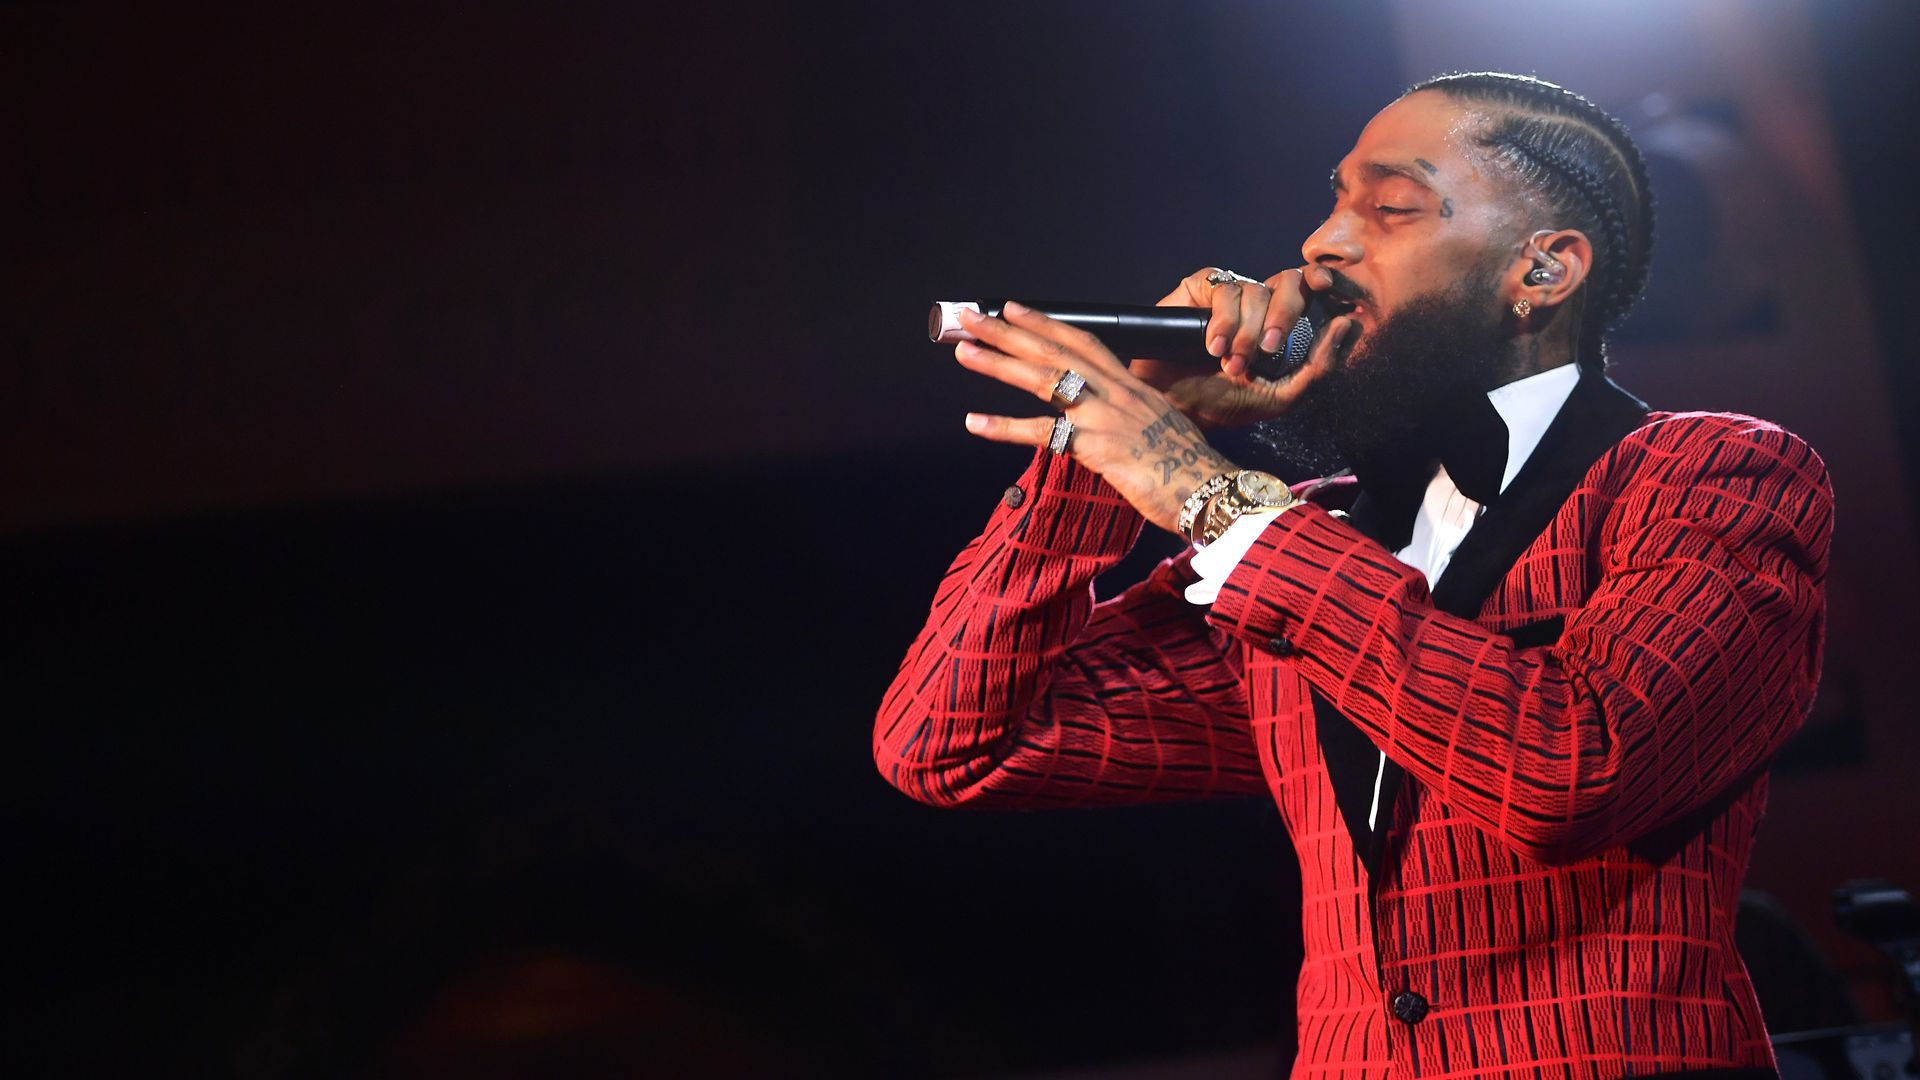 The late rapper Nipsey Hussle